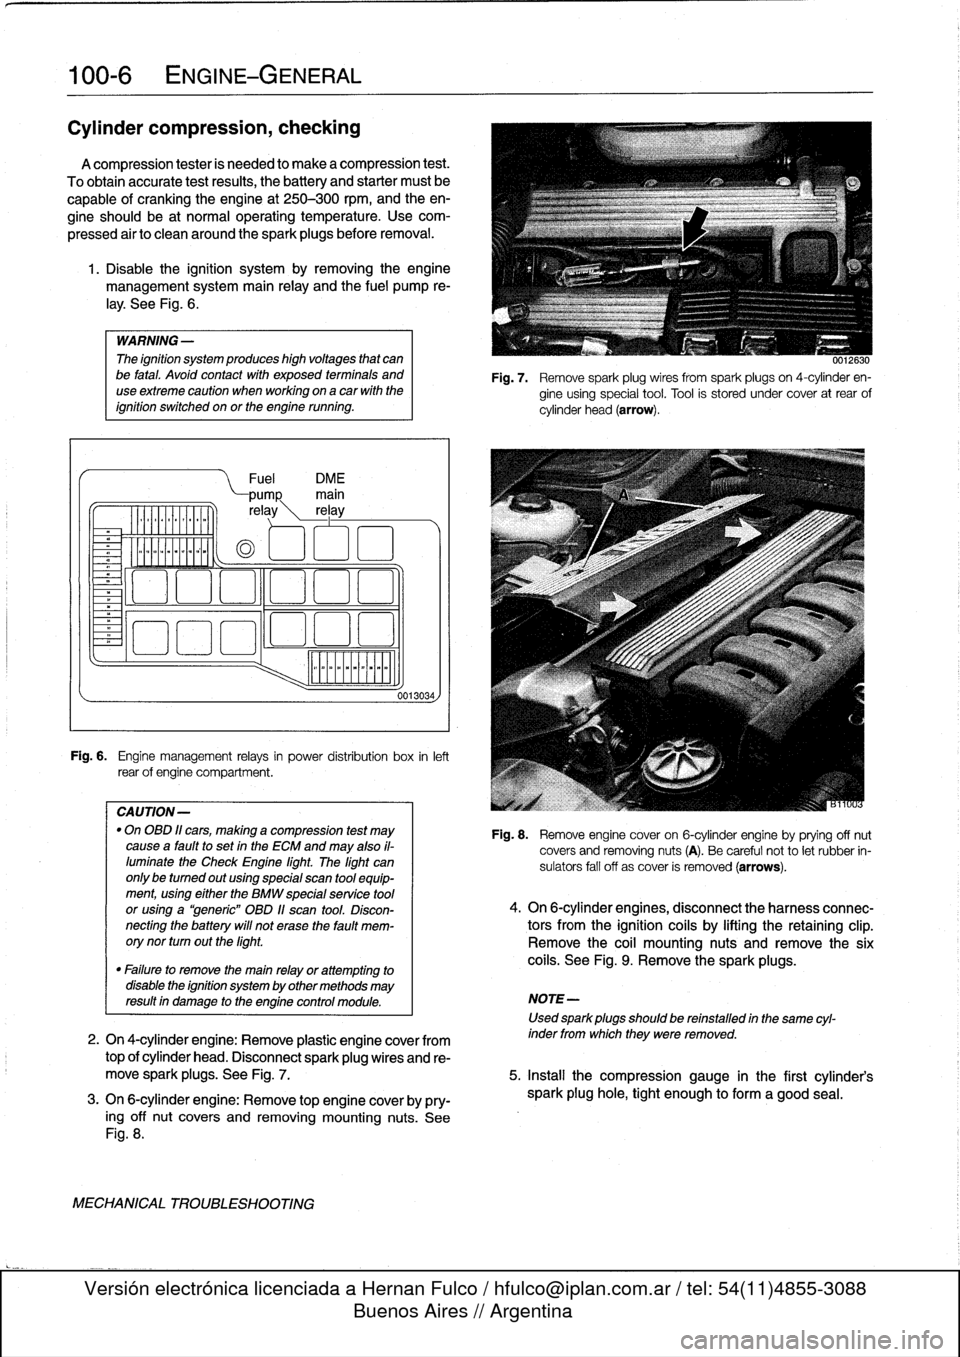 service manual  manual repair engine for a 1996 bmw m3